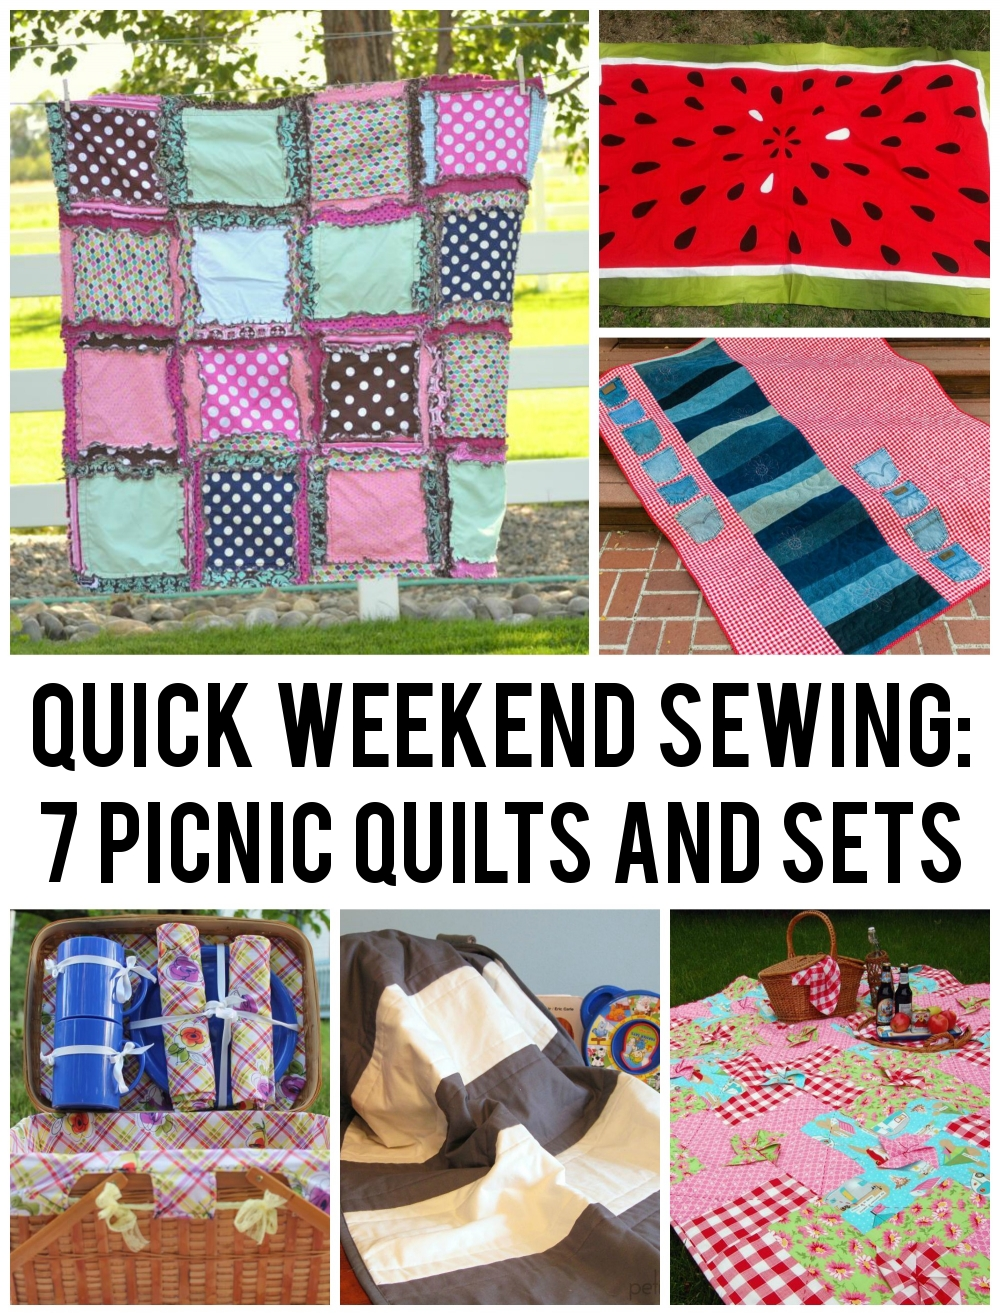 7 Picnic Quilts and Sewing Patterns